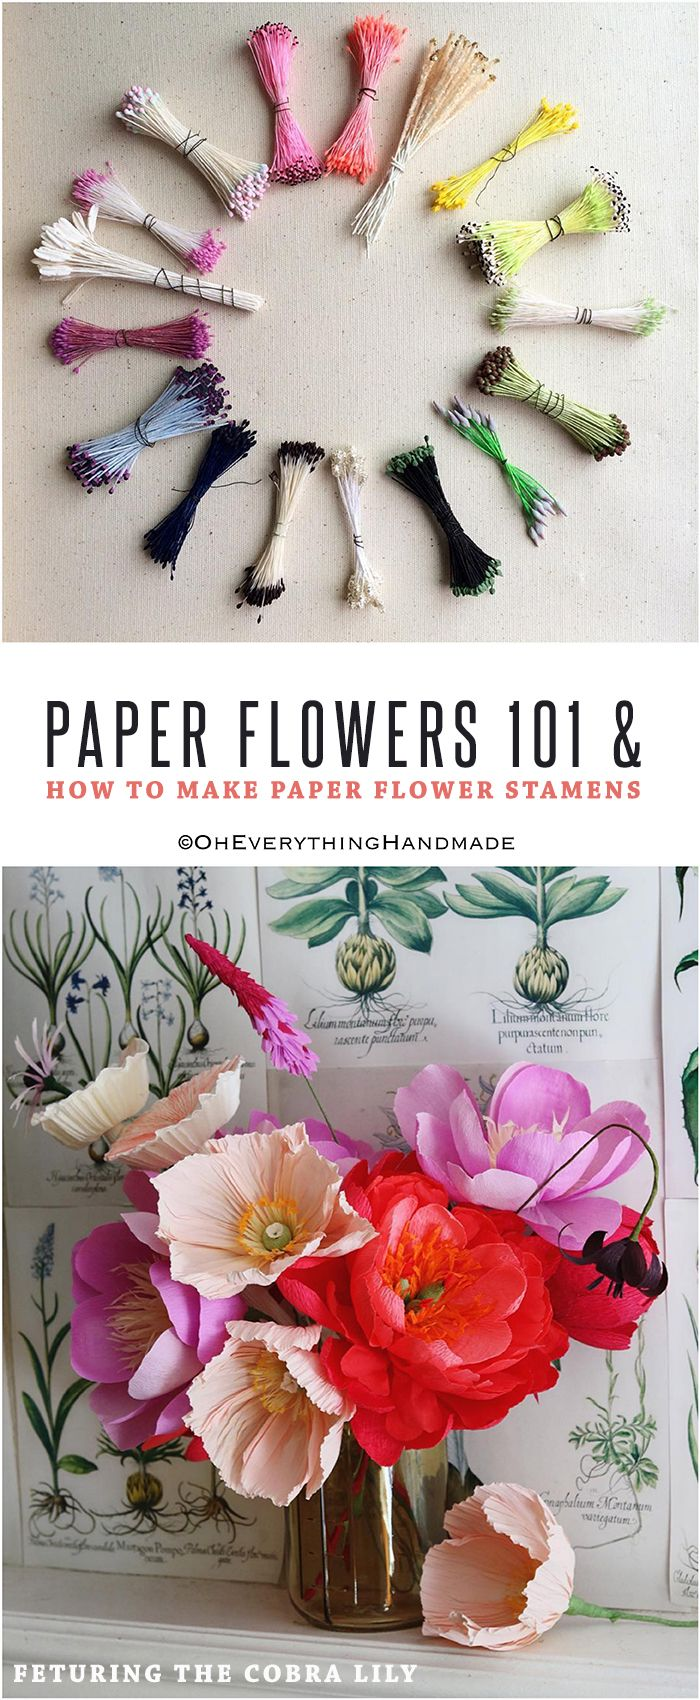 Hi, everyone and welcome to Paper Flowers 101 & How to Make Paper Flower Stamens. If you missed my previous paper flower features, click here to catch up on all the features: Paper Flowers 101 Series.